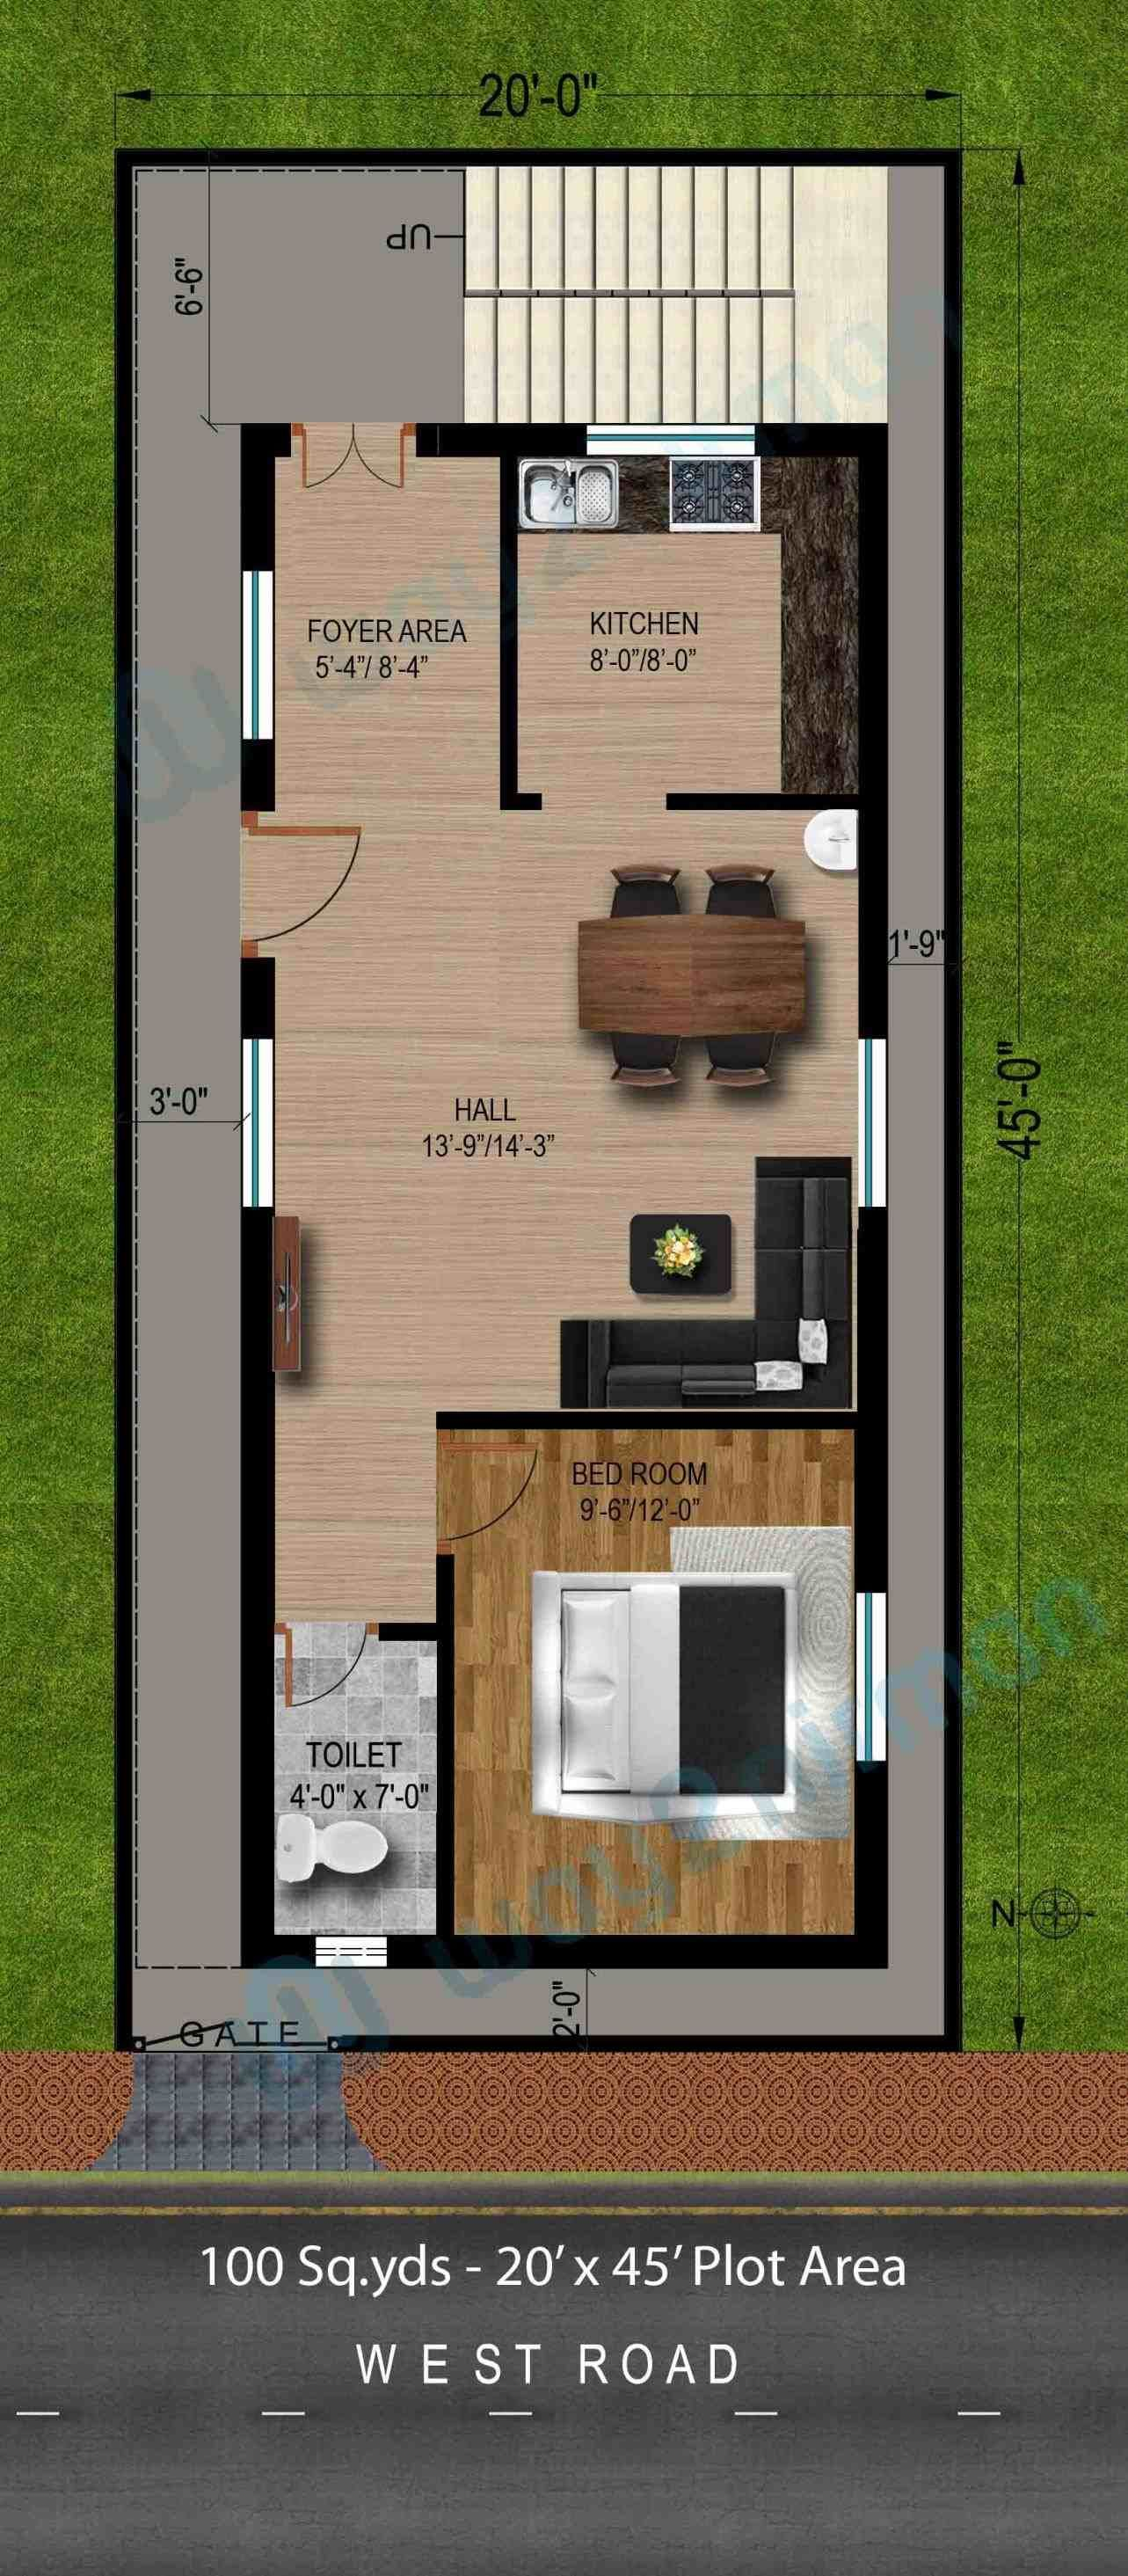 25 Top View Post Home Design Plans For 100 Sq Ft Visit Homelivings Decor Ideas